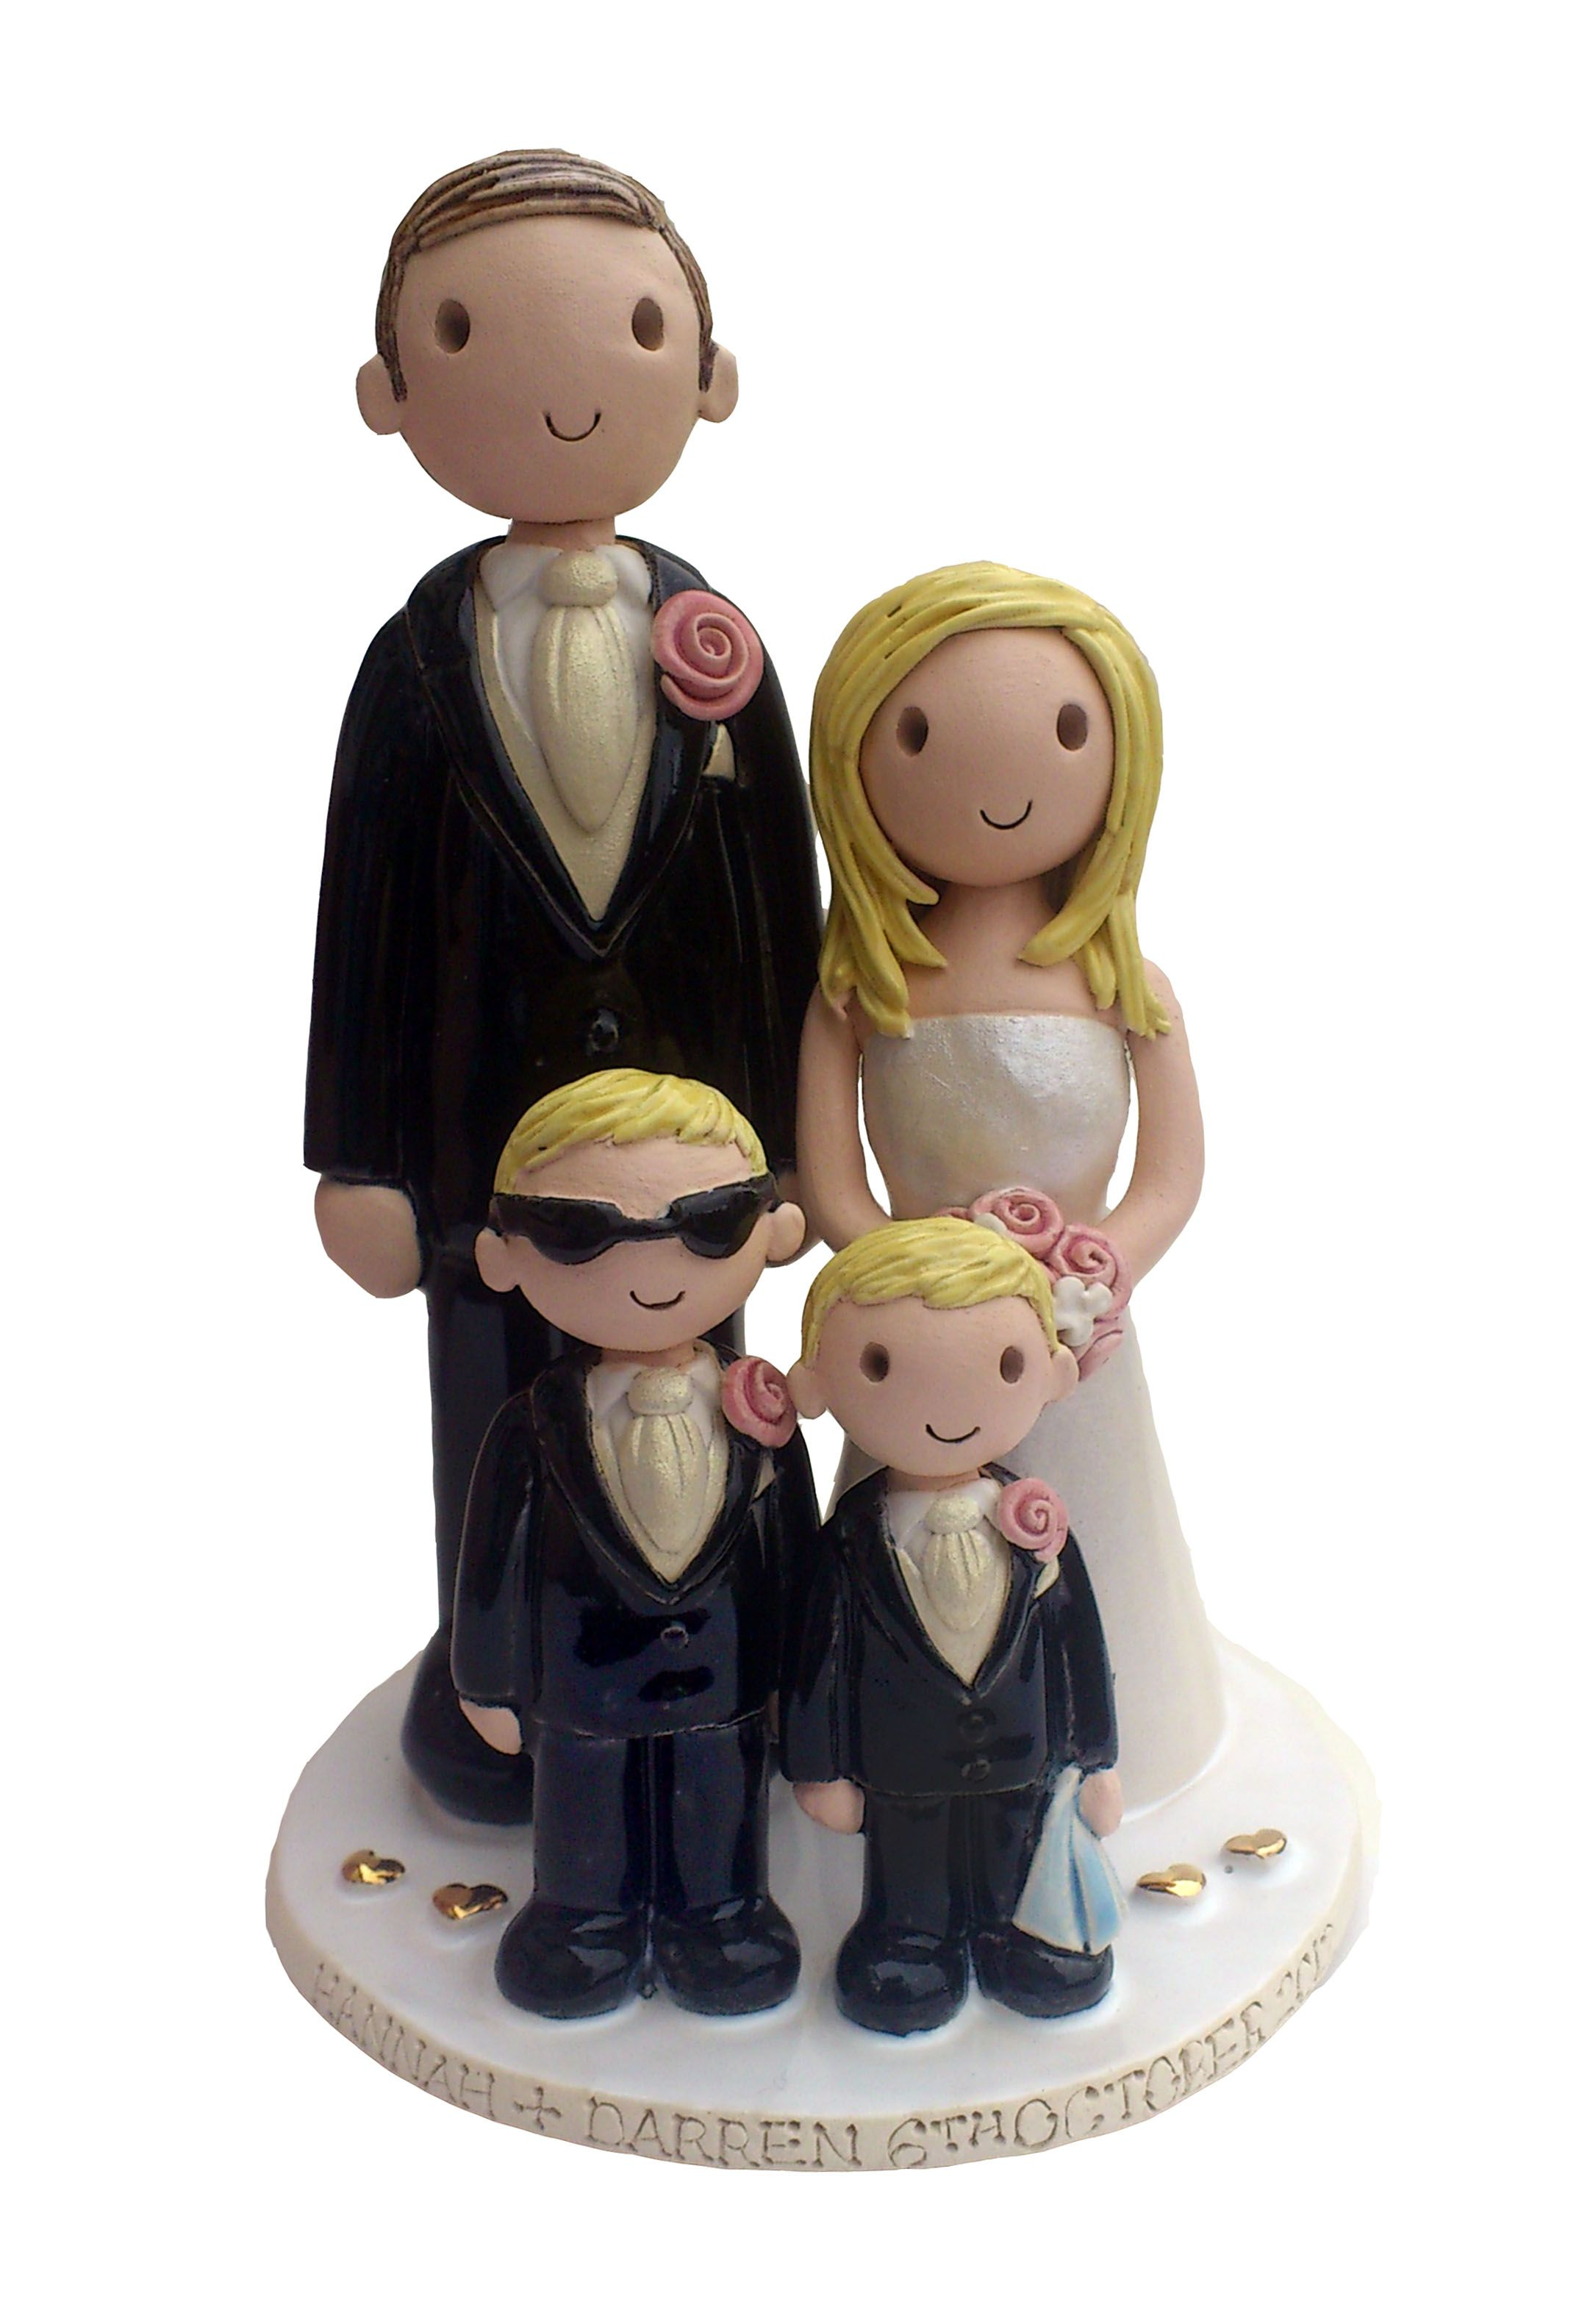 family wedding cake toppers uk family cake toppers can find superheroes wars etc 14186